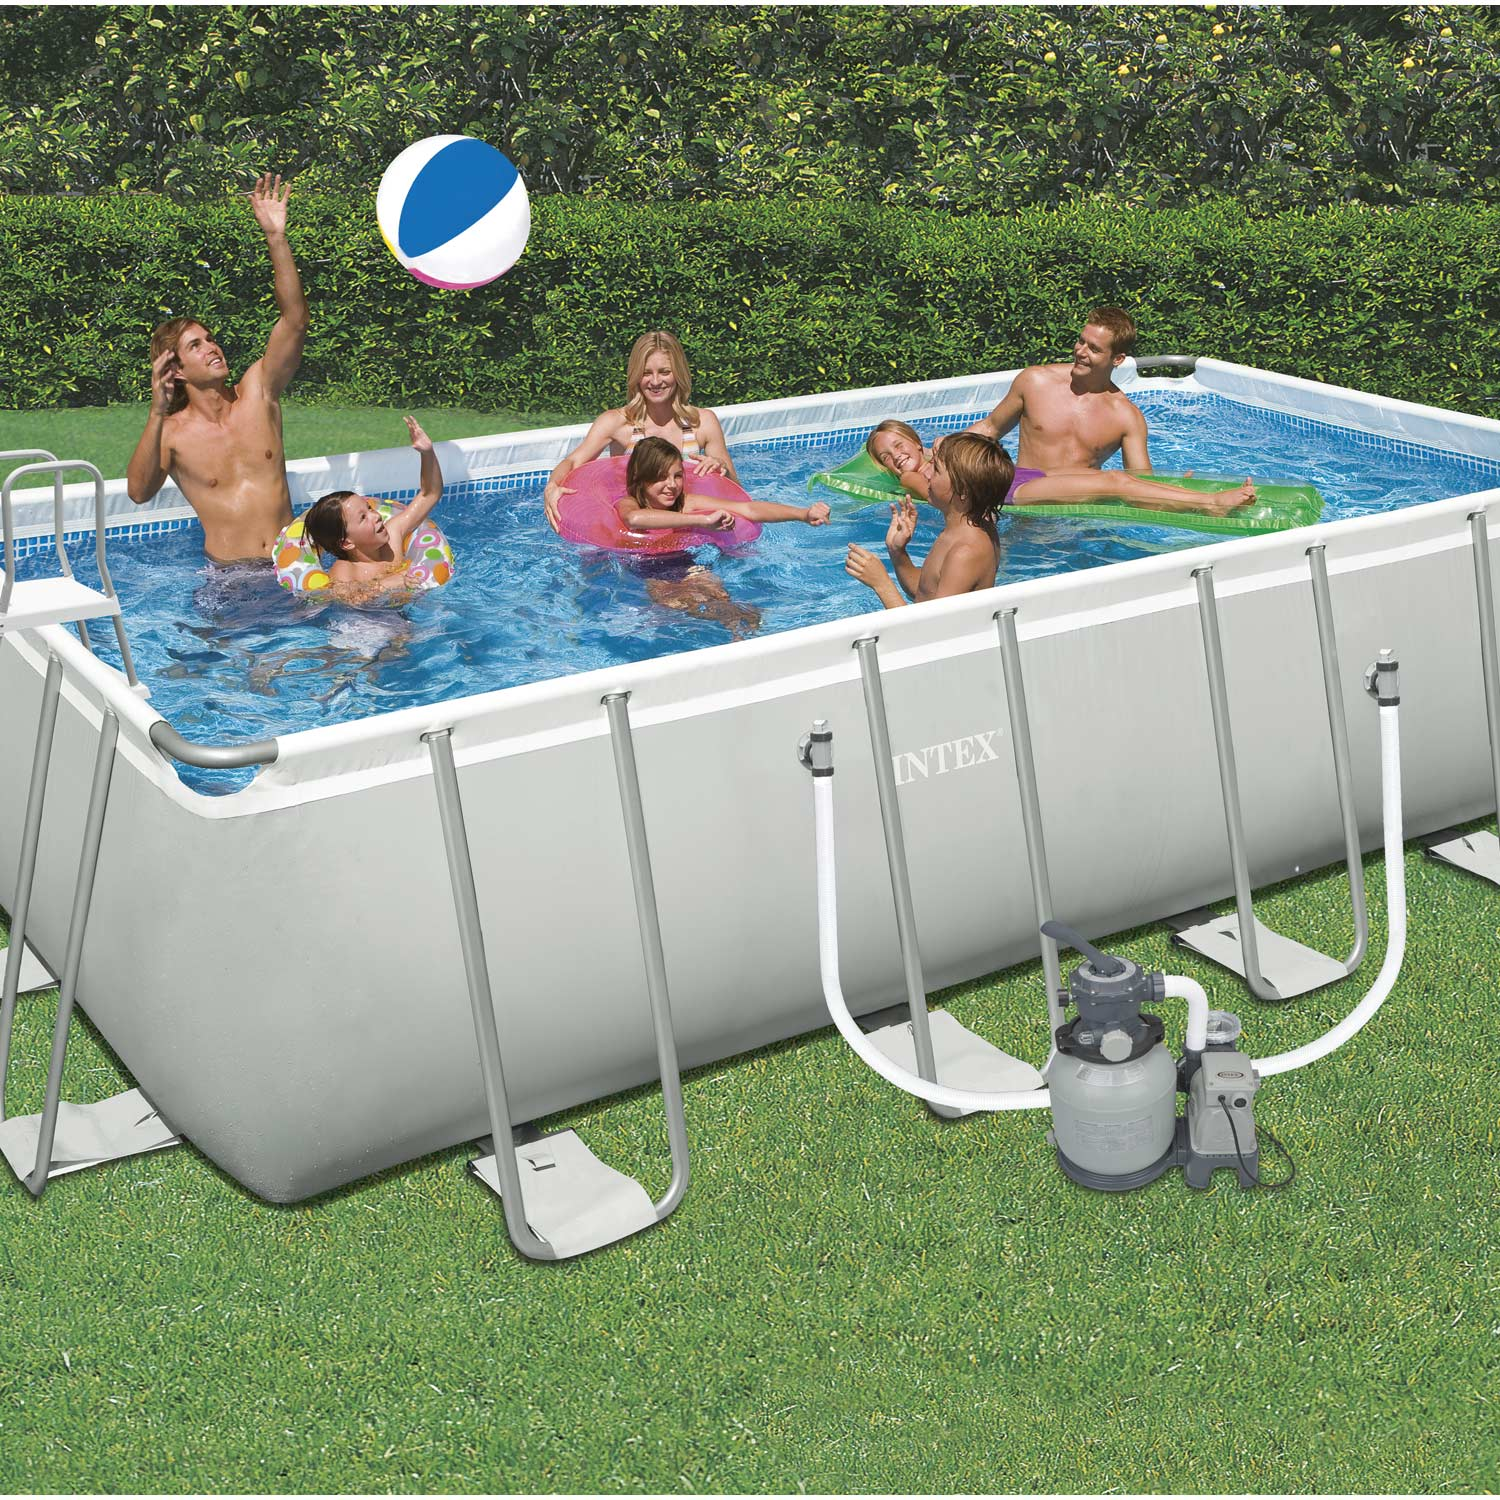 Piscine hors sol autoportante tubulaire intex l x l - Piscine rectangulaire hors sol intex ...